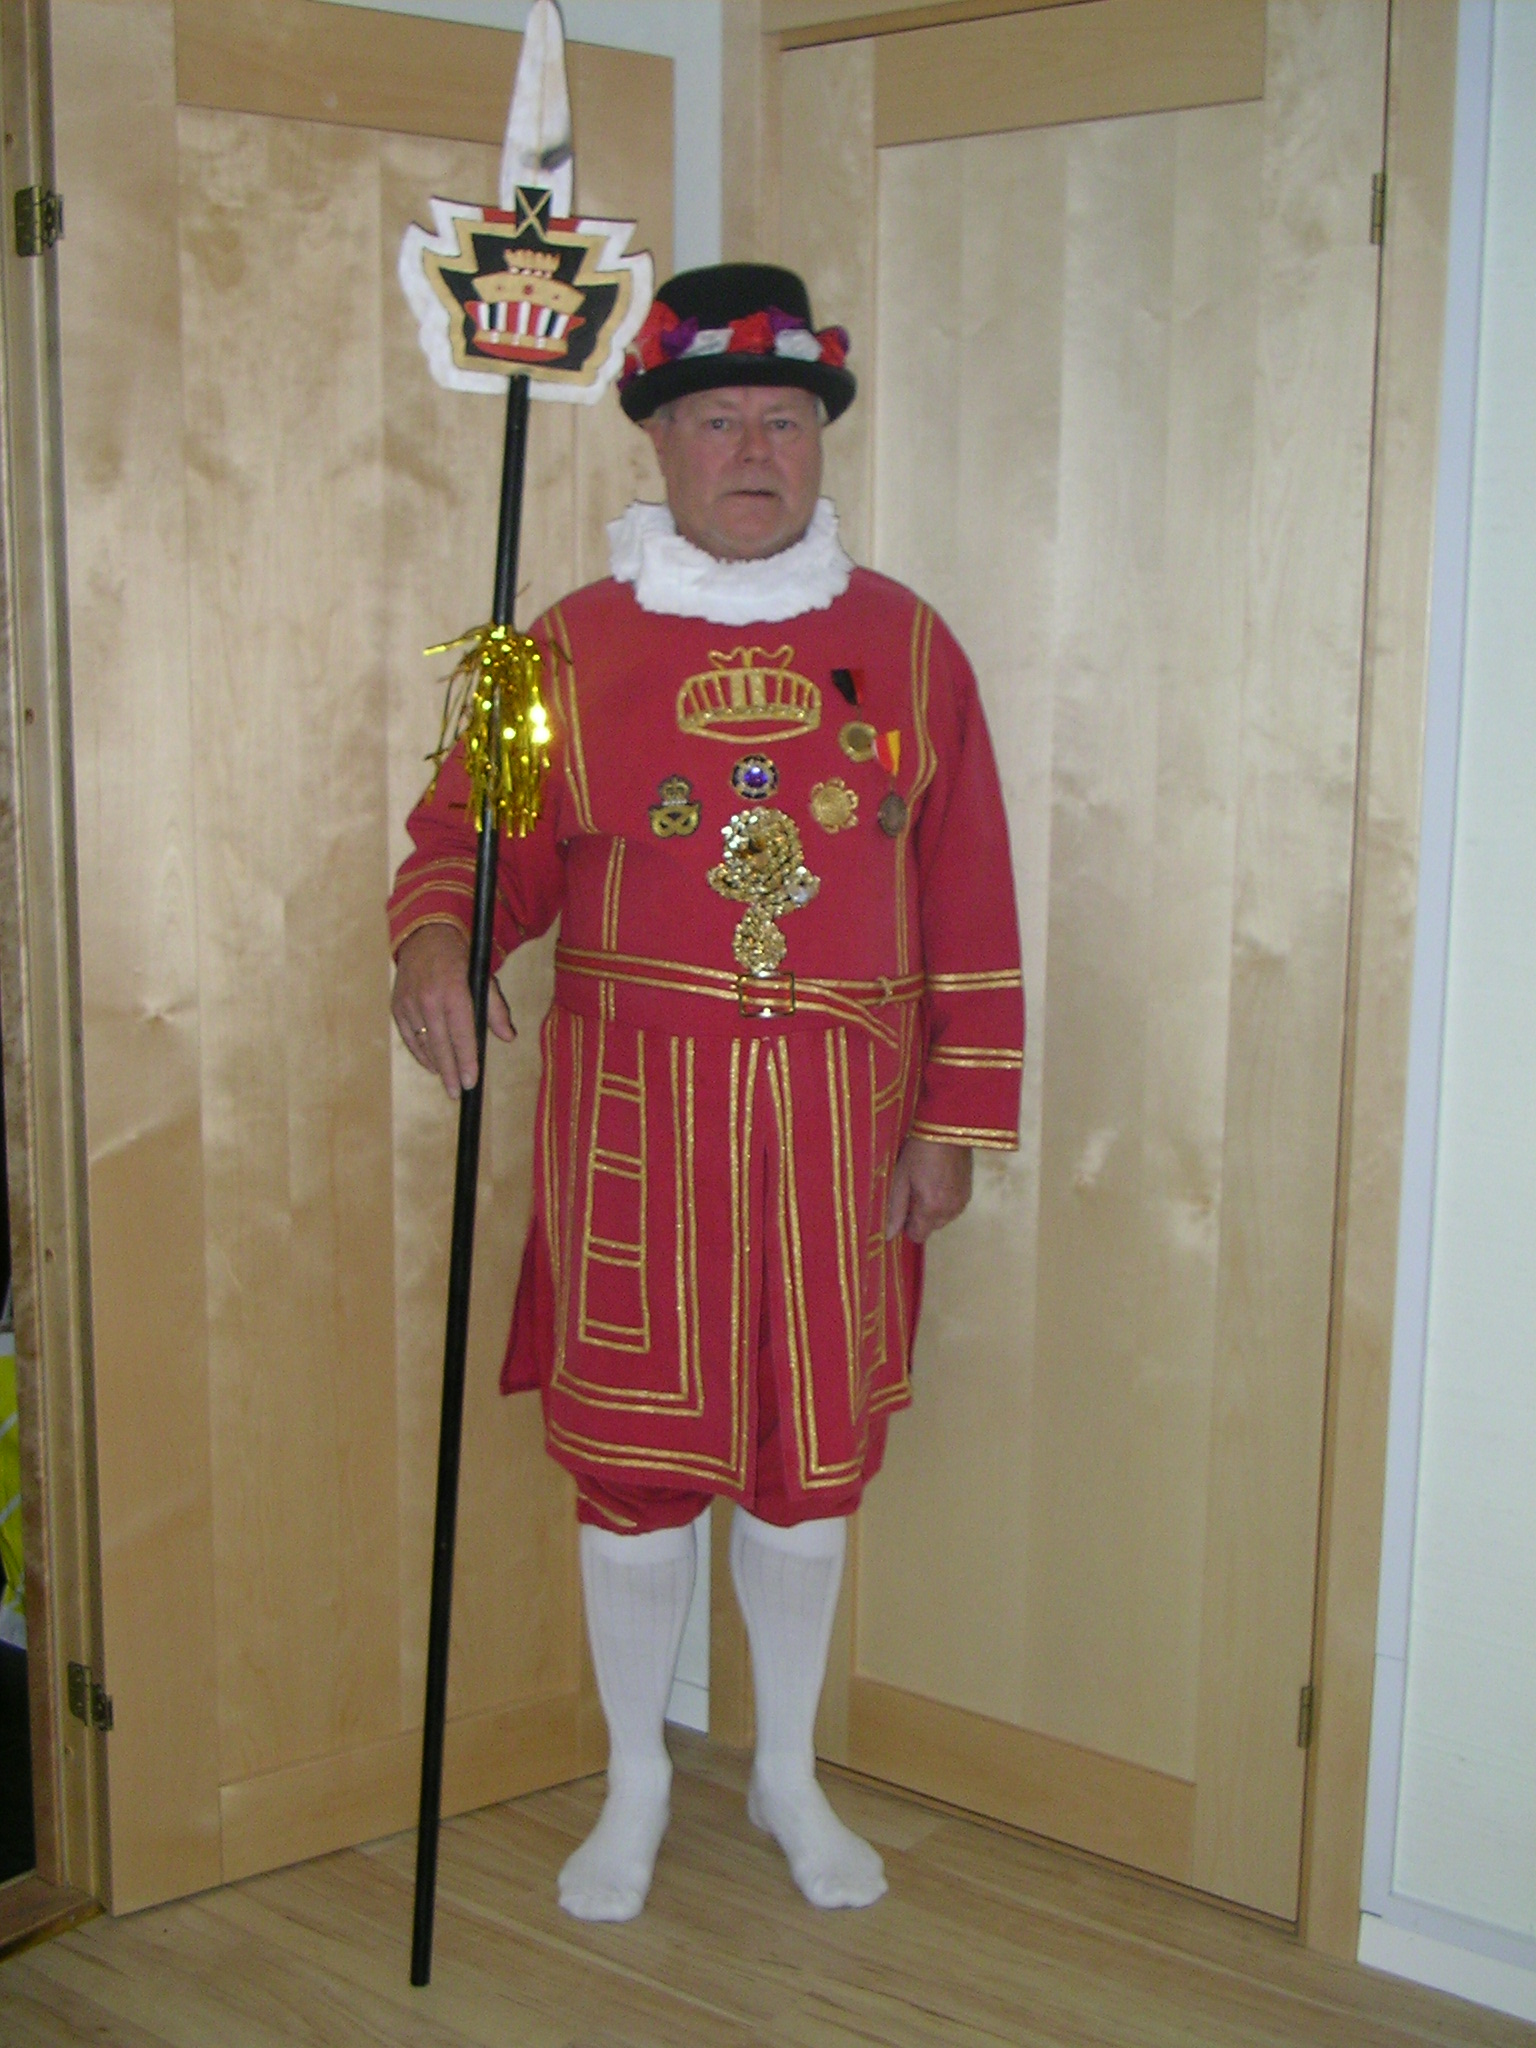 Beefeater uniform